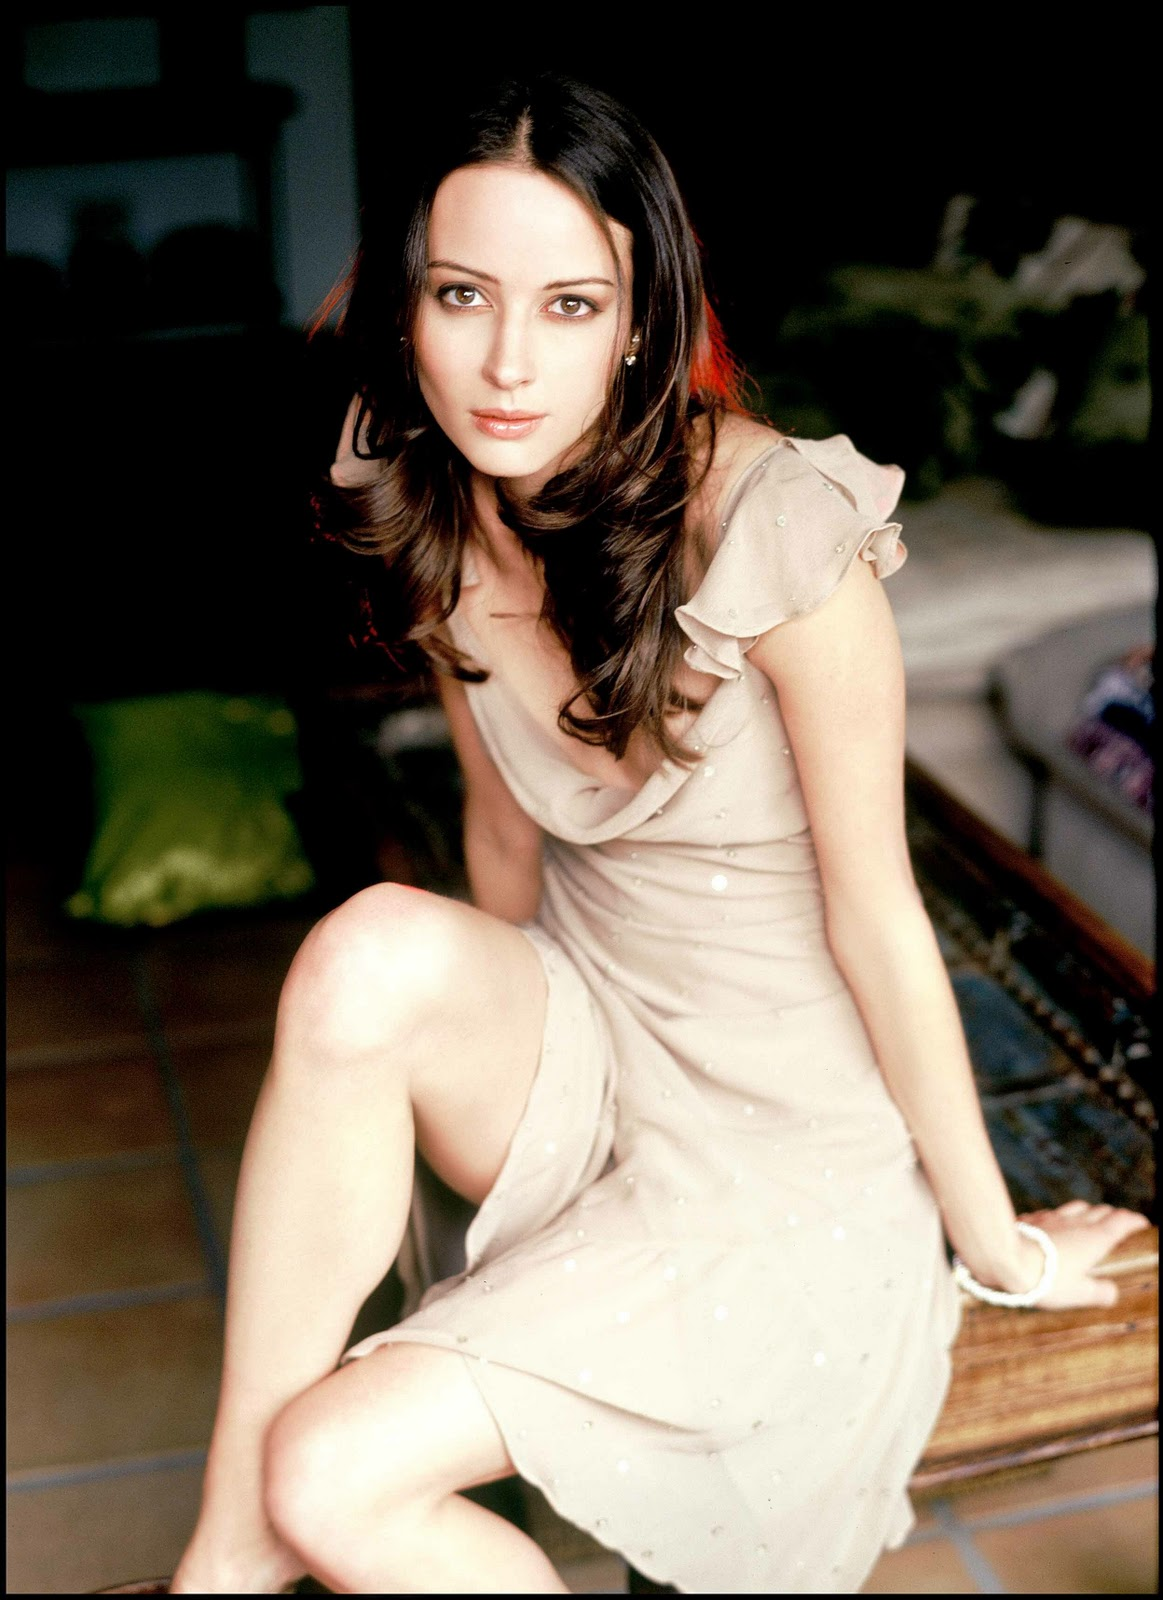 Amy Acker Hot Pics style fit hot: the hot american actress of television and